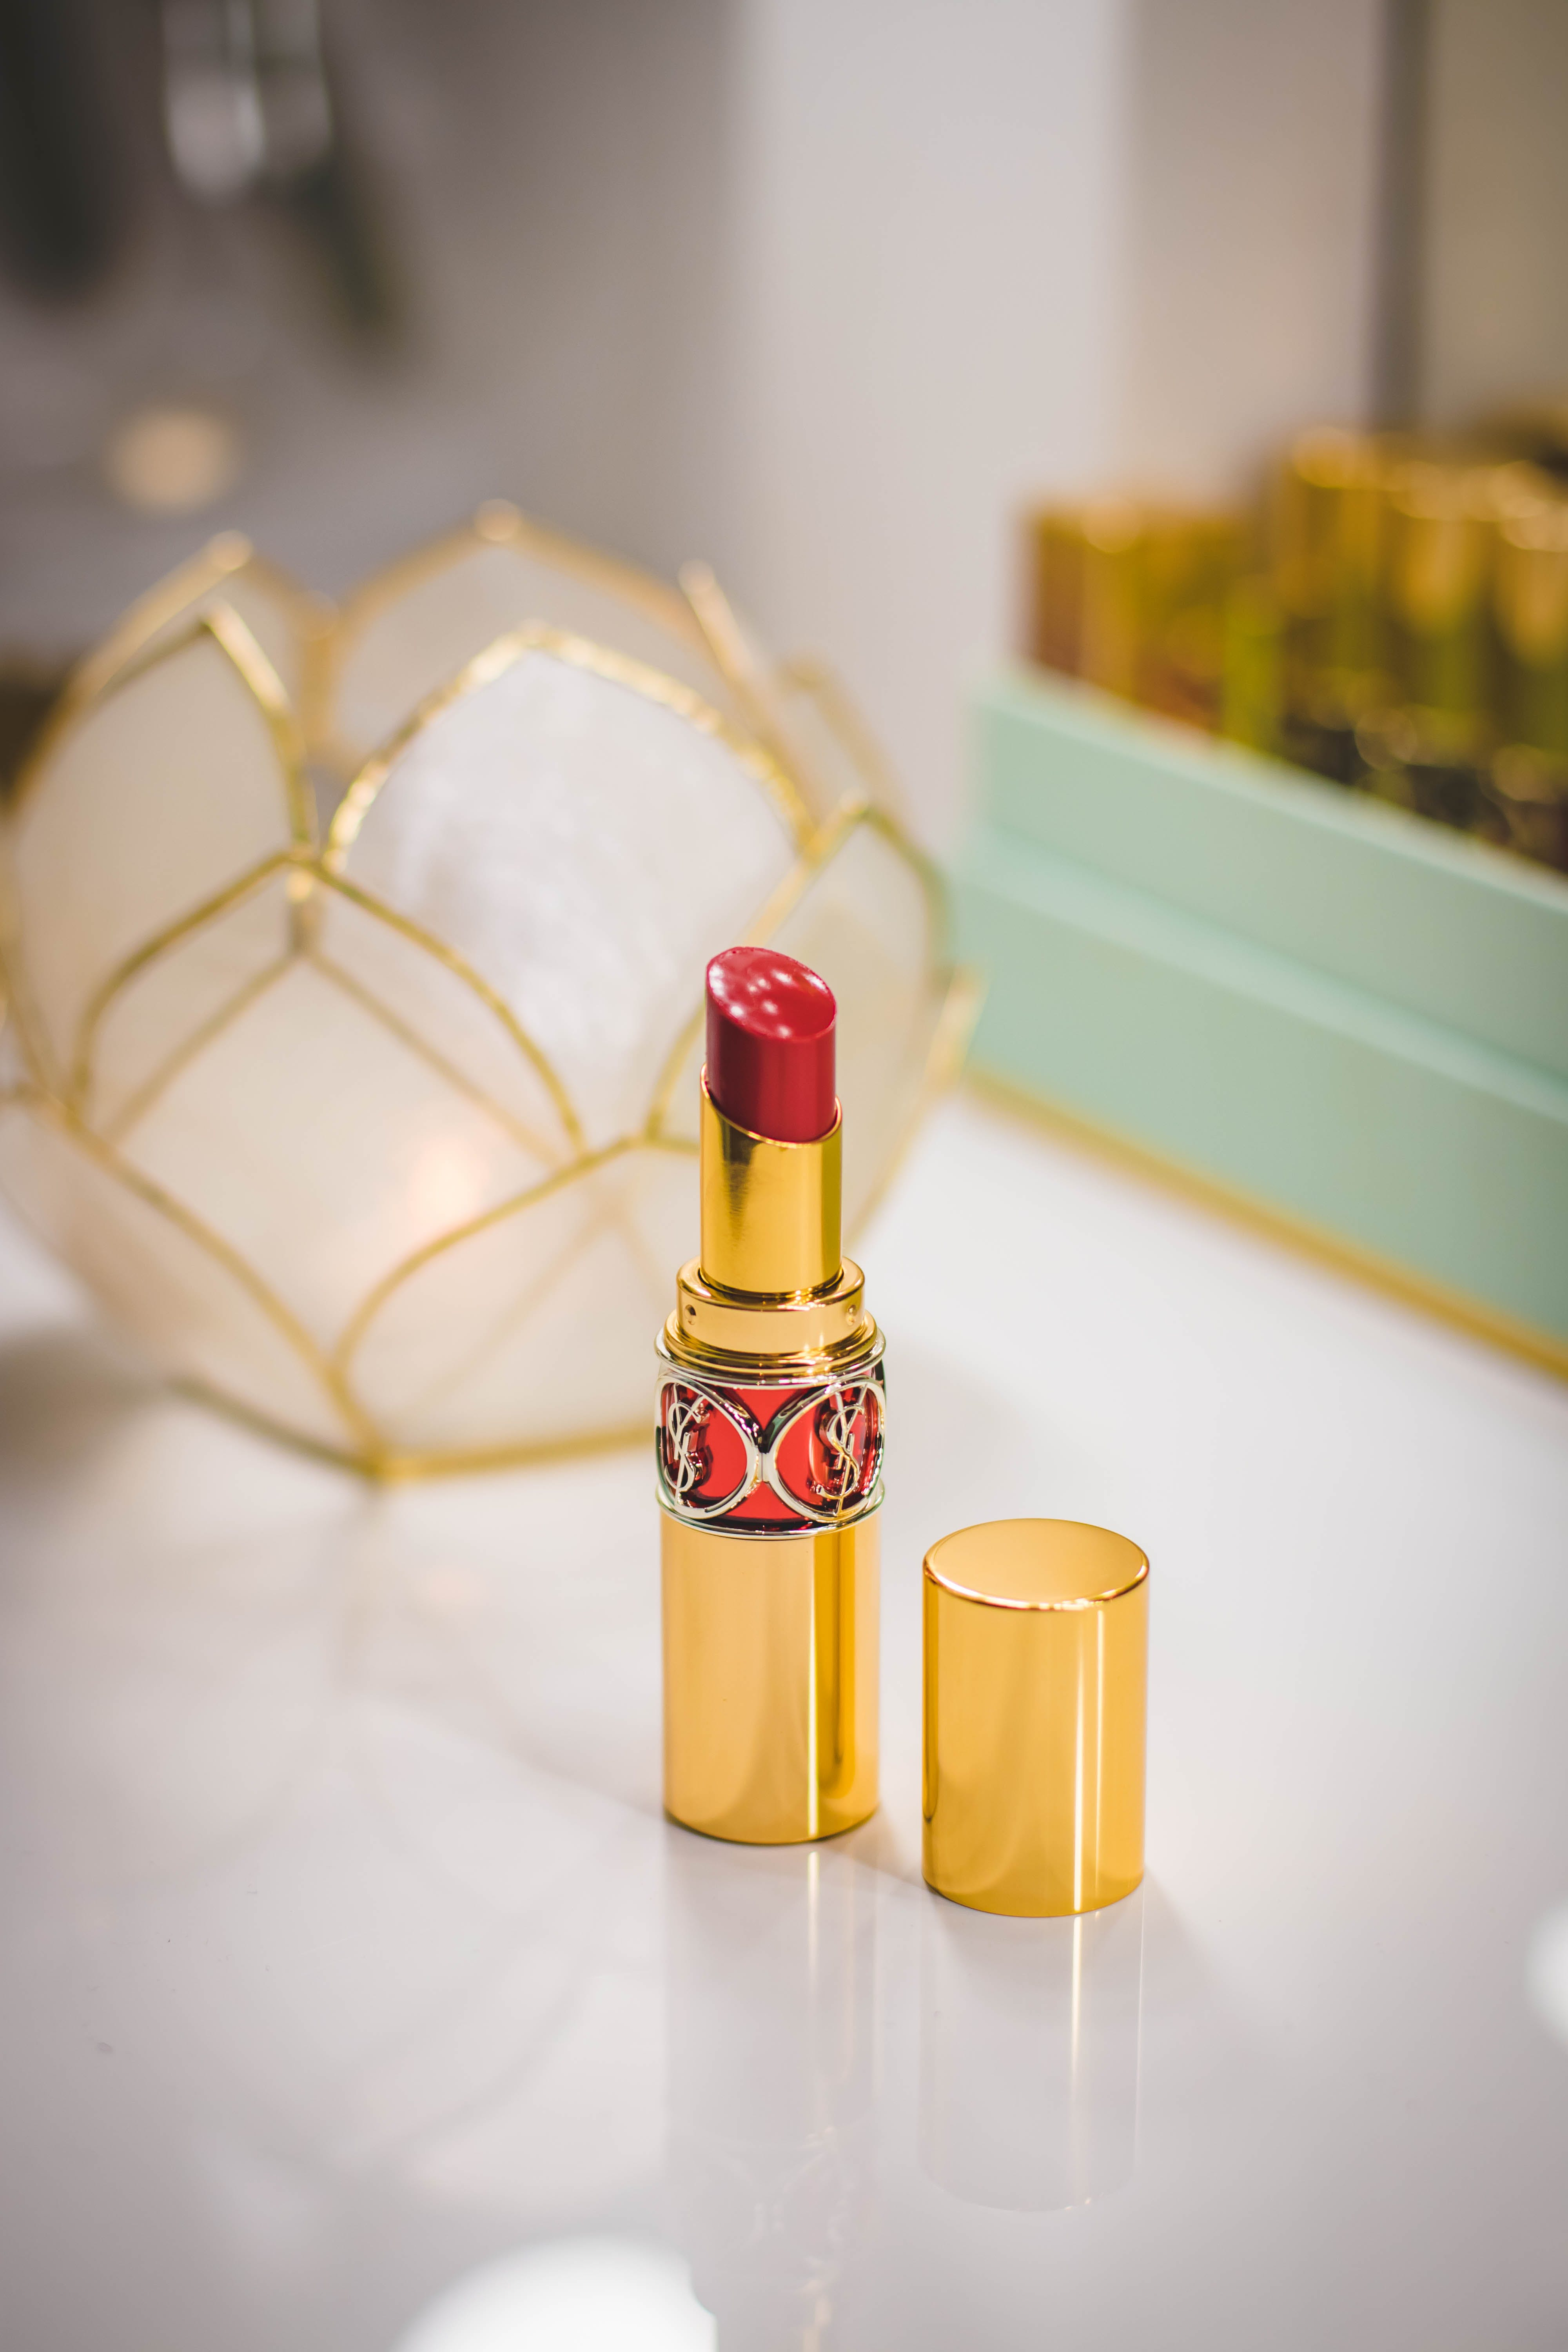 Close-Up Photography of Red Lipstick on Desk